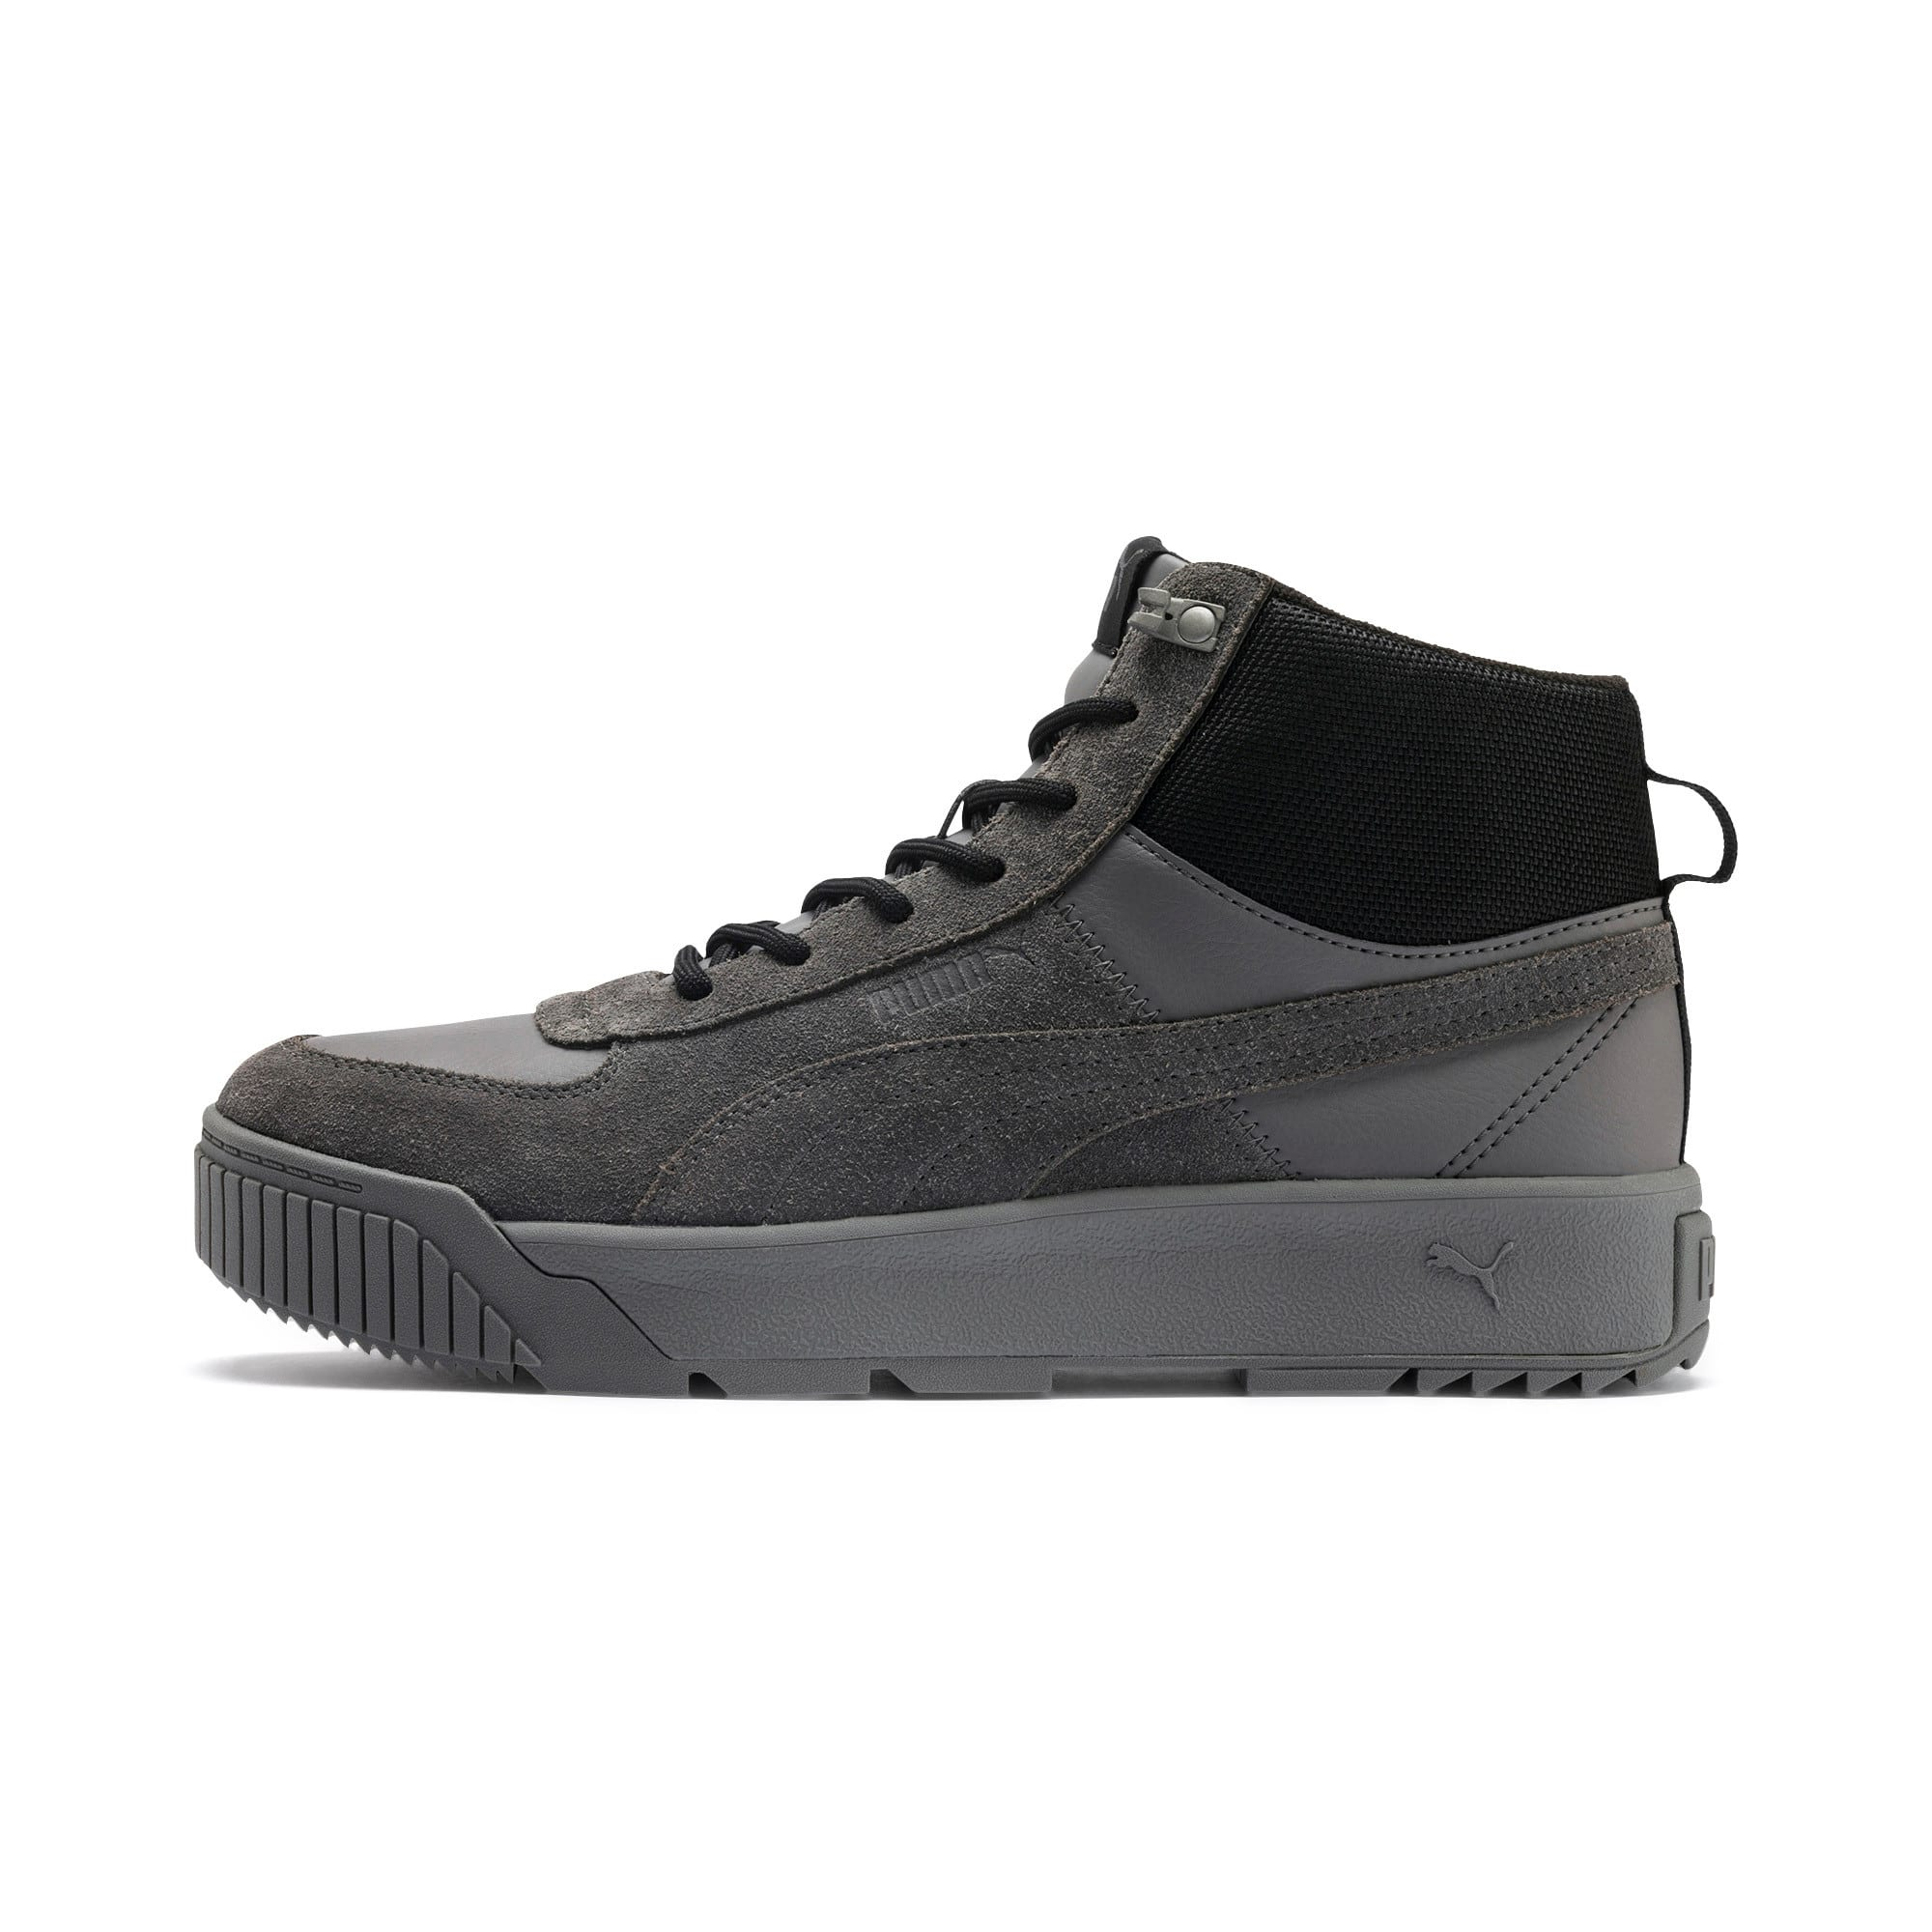 Thumbnail 1 of Tarrenz Sneaker Boots, CASTLEROCK-Puma Black, medium